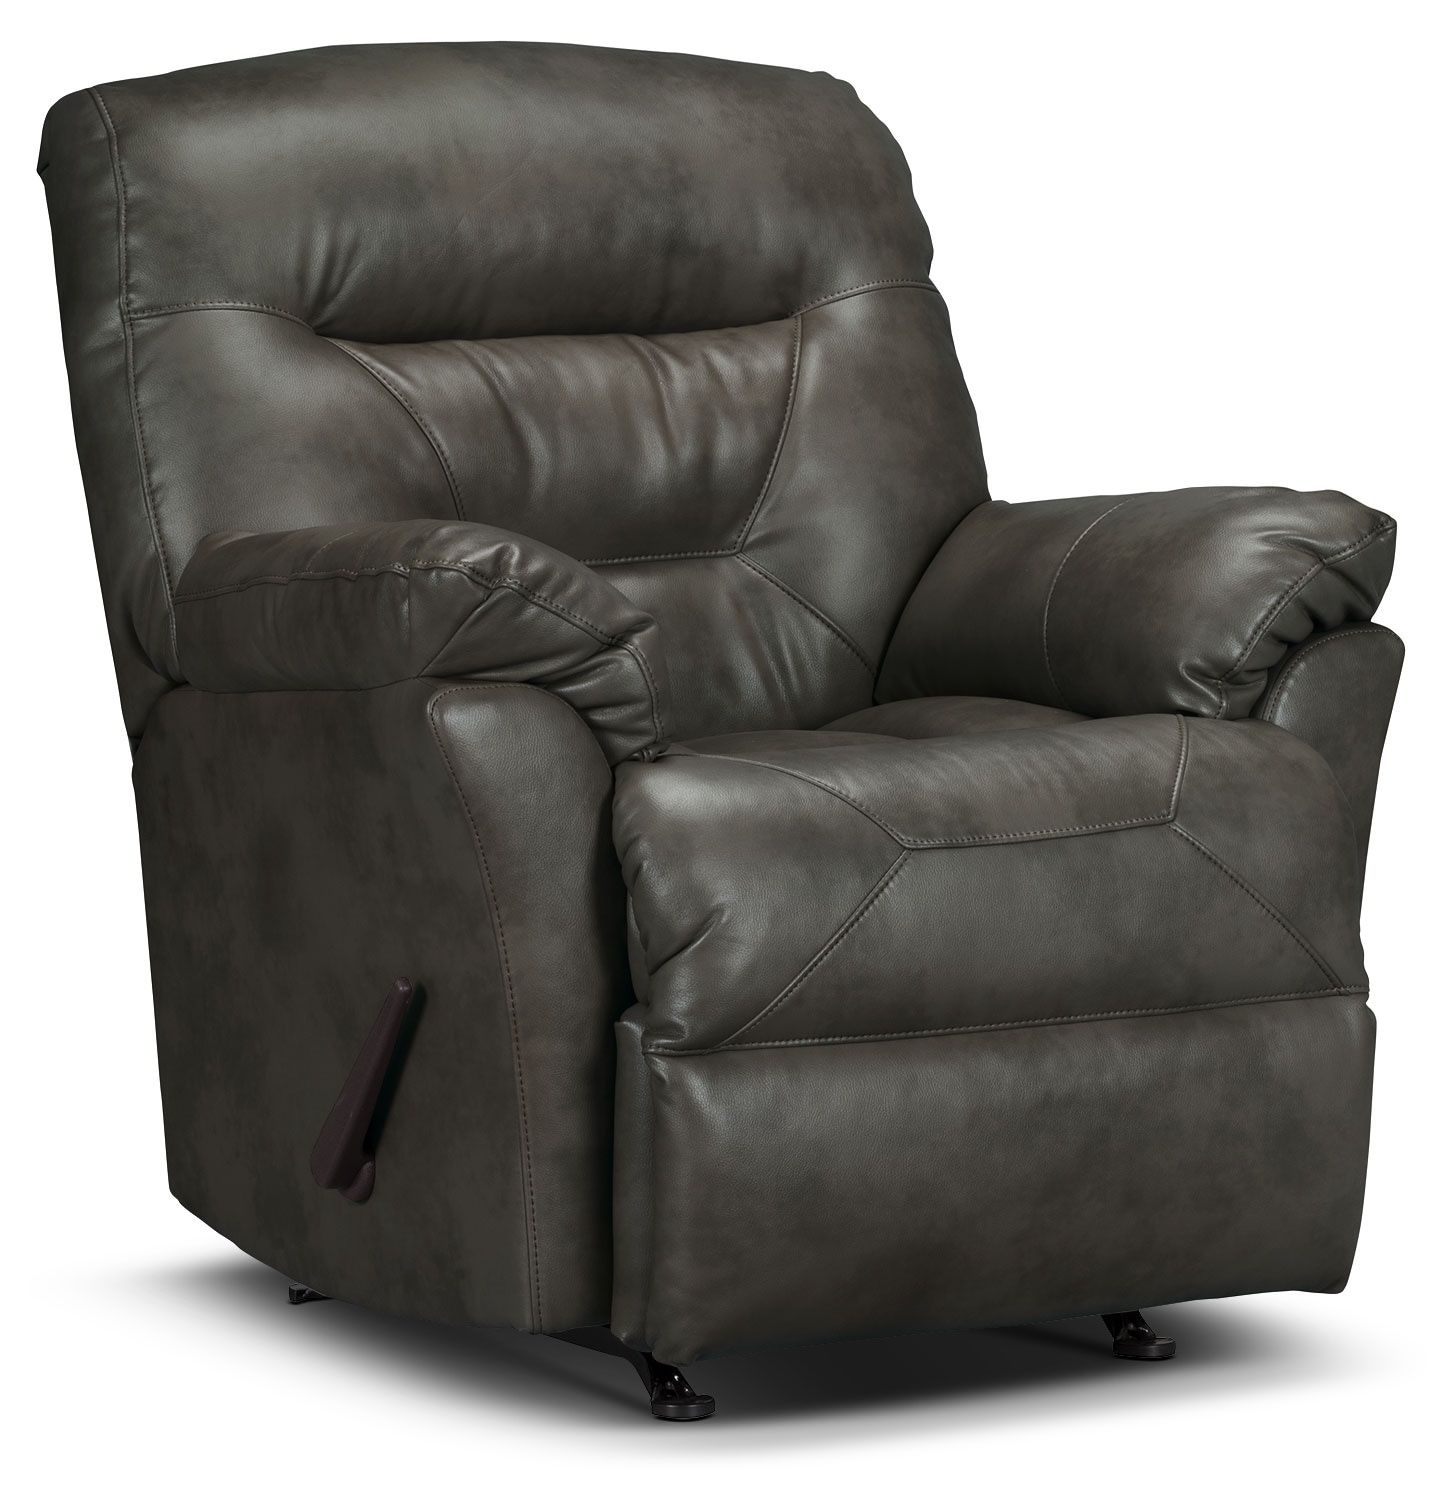 Living Room Furniture - Designed2B Recliner 4579 Leather-Look Fabric Rocker Recliner - Seal